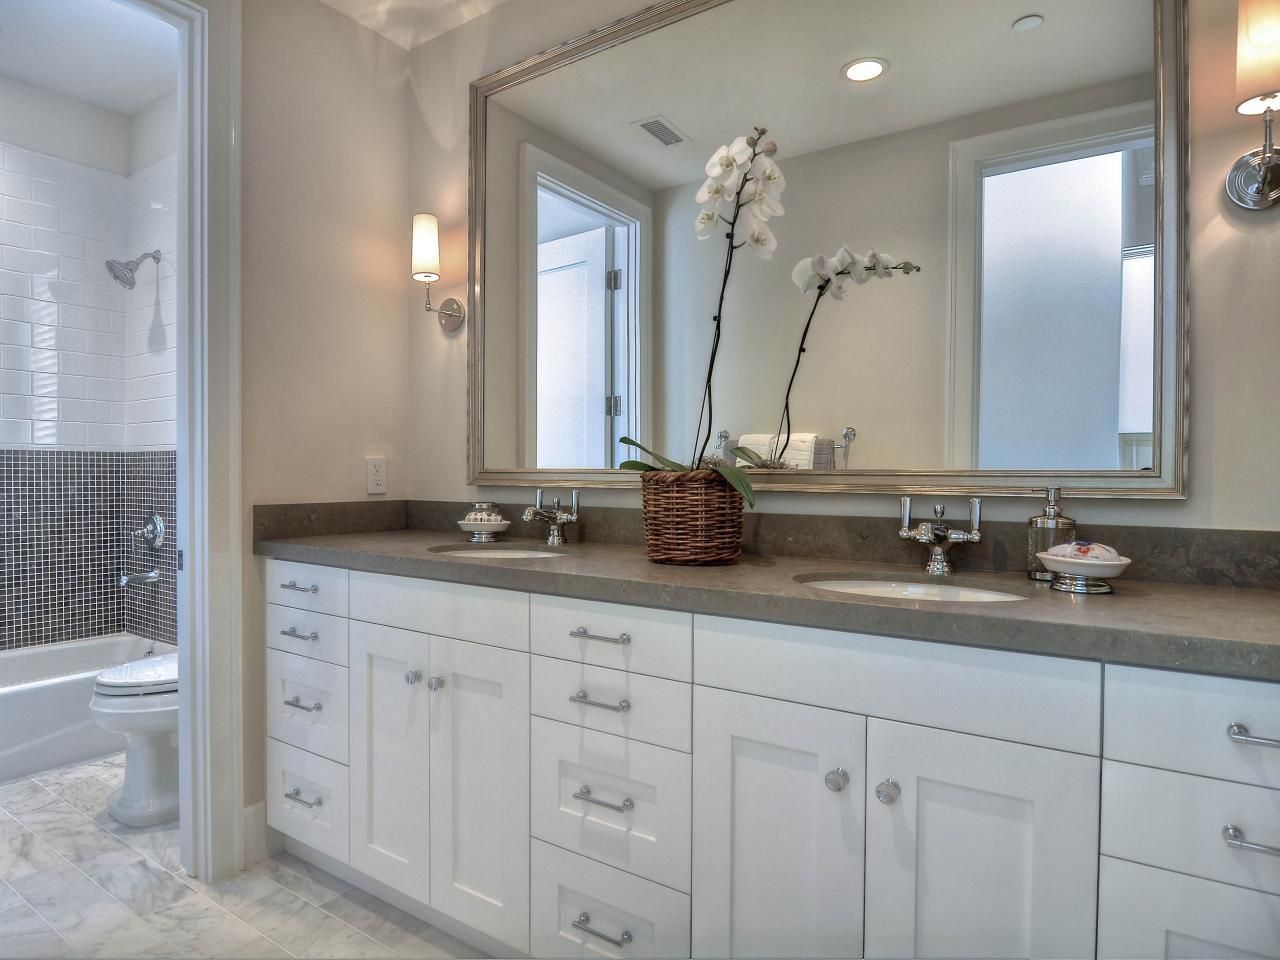 images about new master bathroom whitegray on pinterest gray vanity  vanities and painting oak cabinets  grey and white bathroom. White Bathrooms  Fully White Bathroom Idea With Luxury Vanity